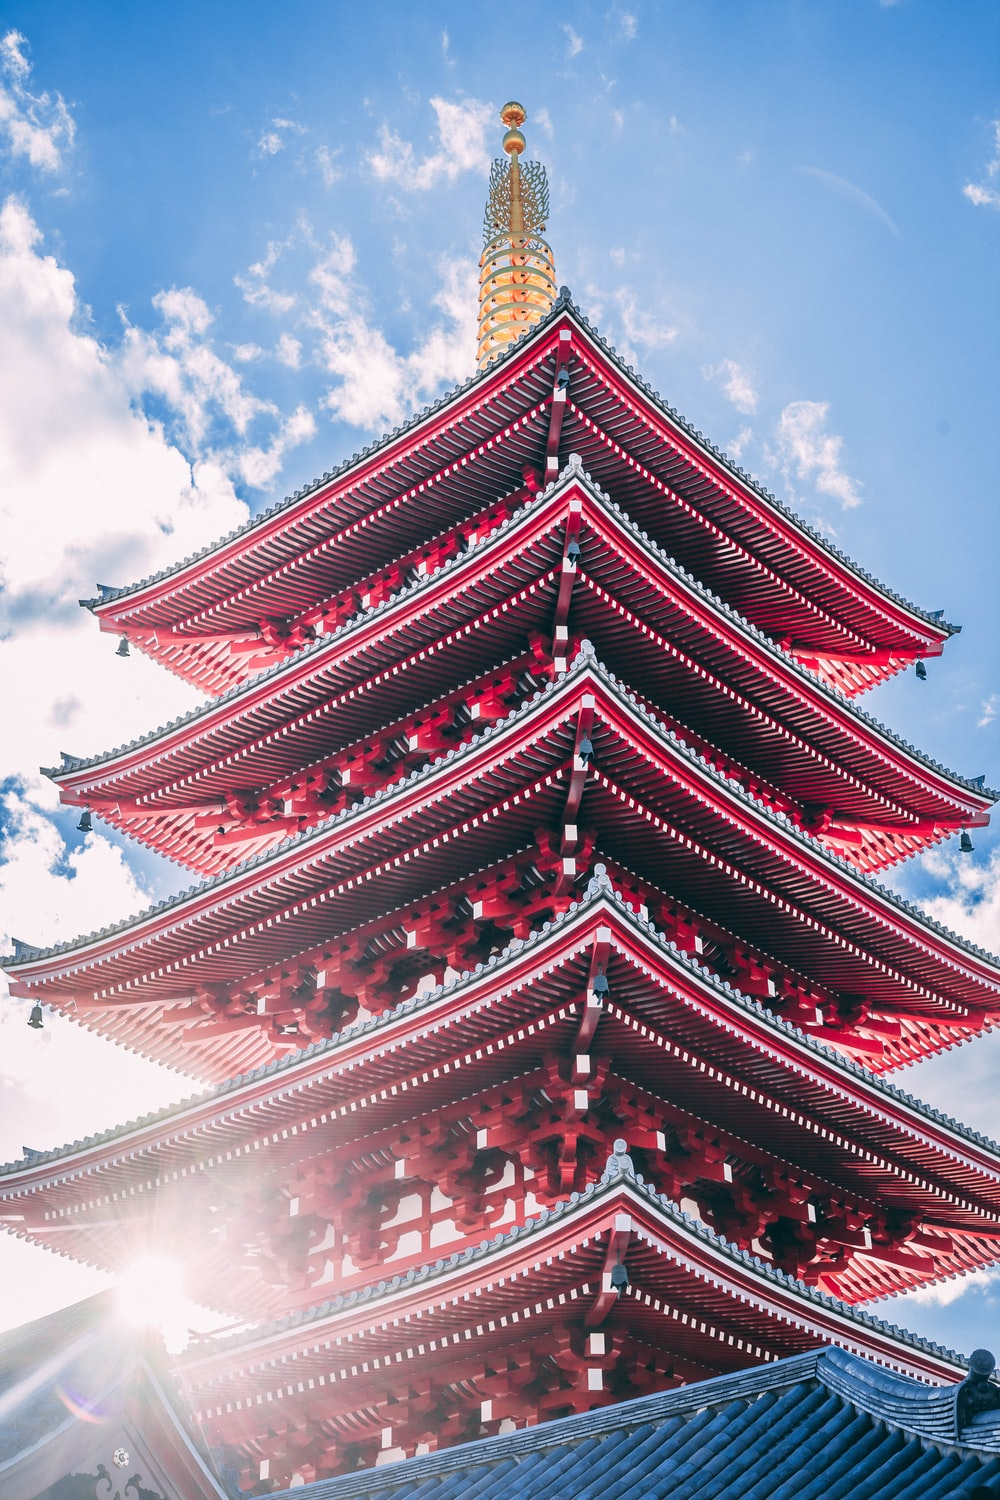 architectural photography of red pagoda temple